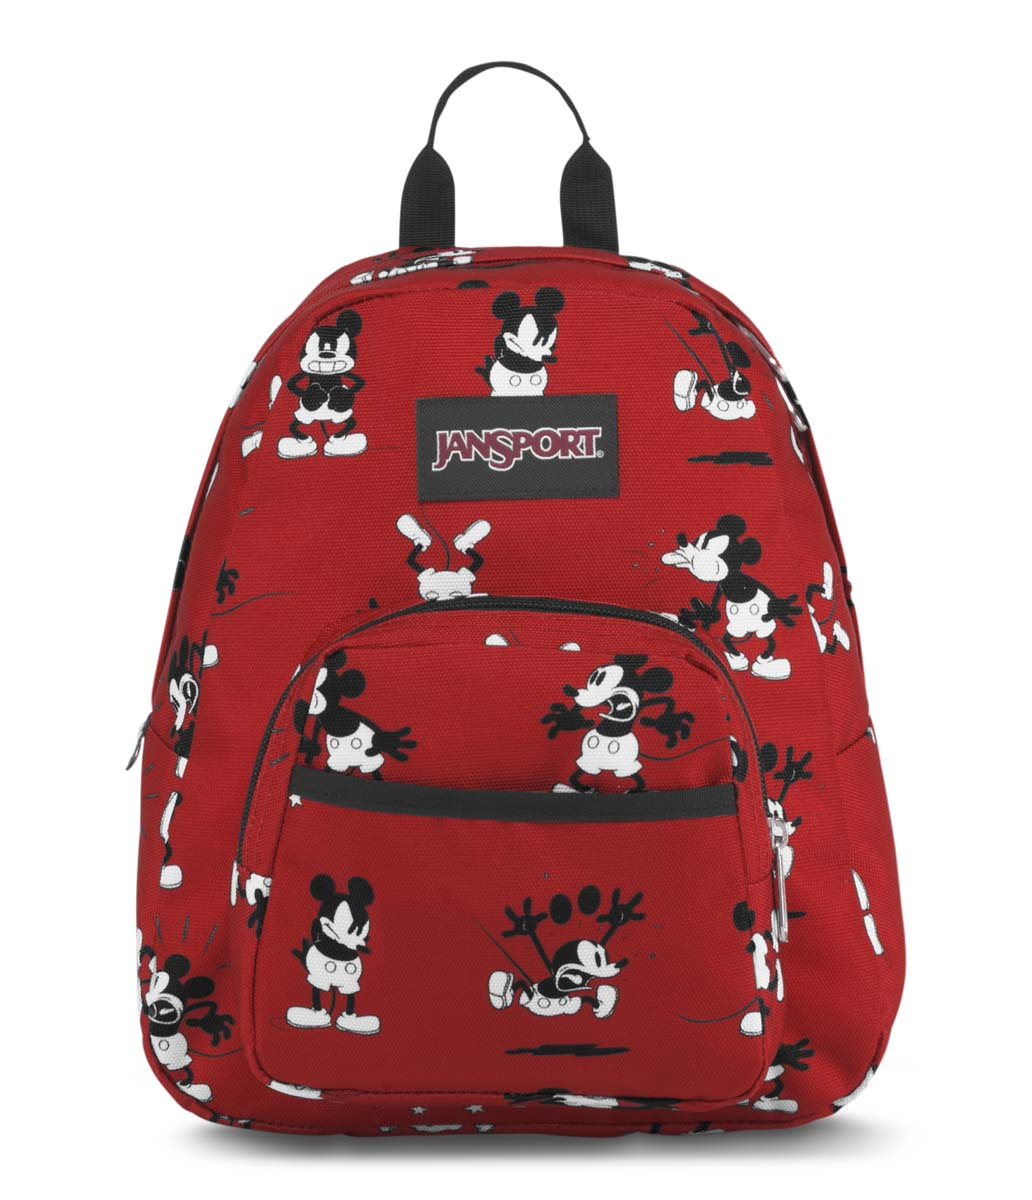 JanSport กระเป๋าเป้ รุ่น Half Pint FX - Disney Red Tape Mr.Mickey